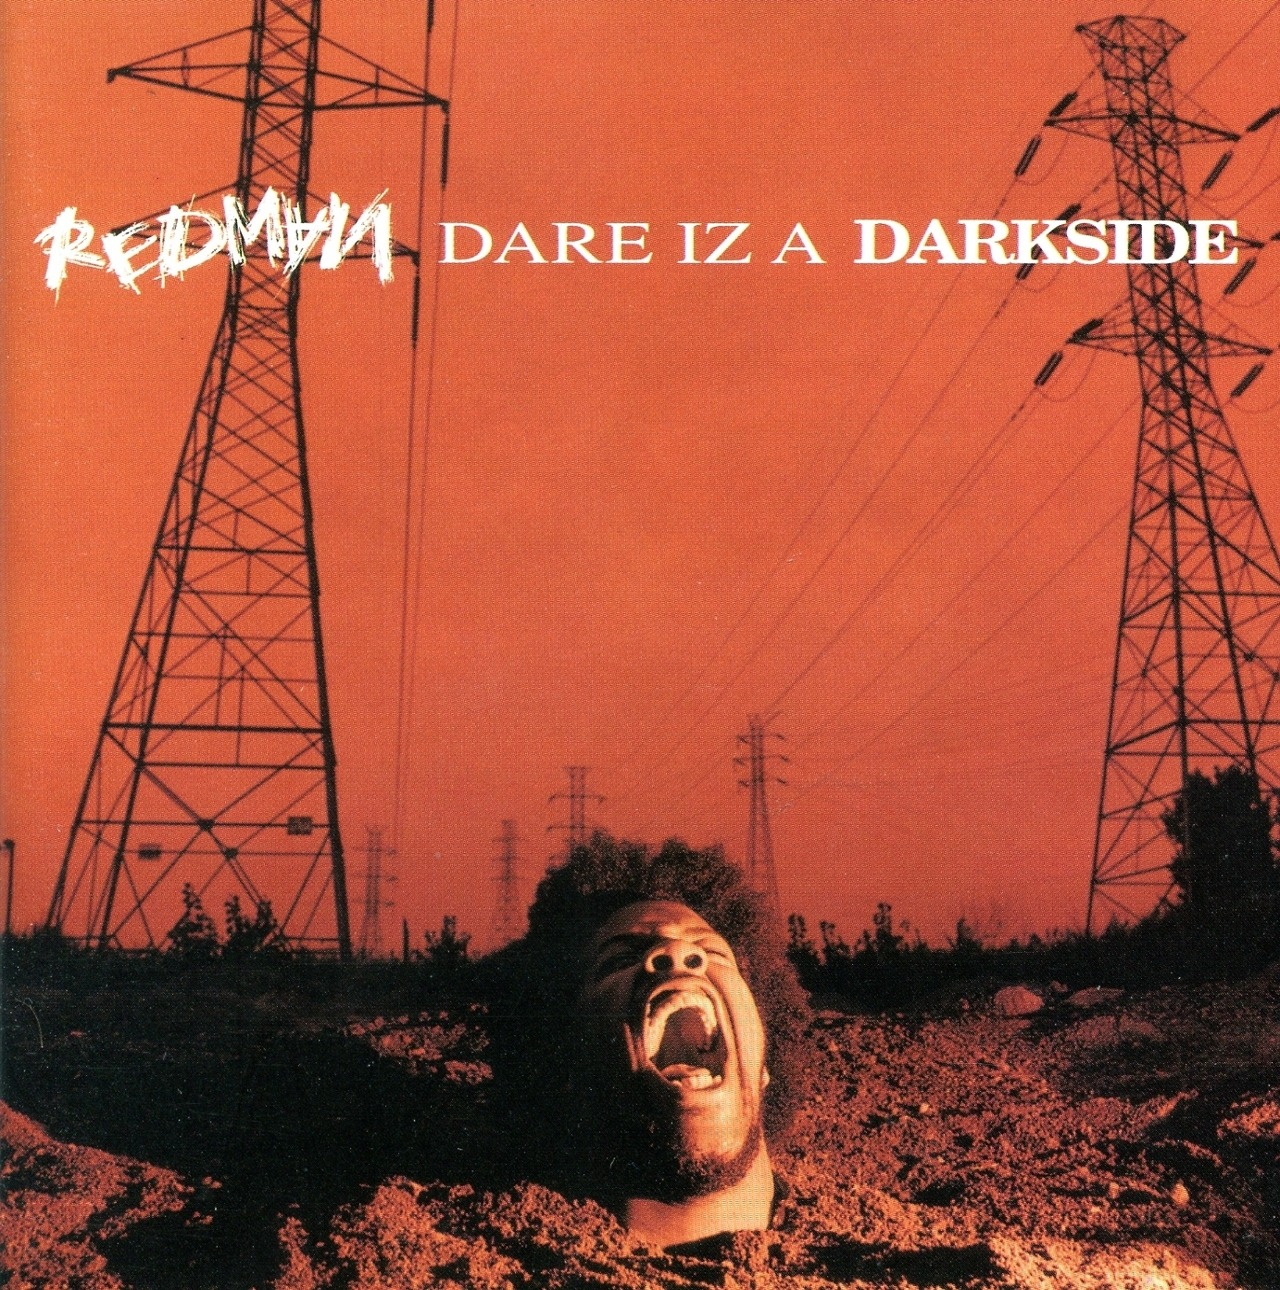 BACK IN THE DAY |11/22/94| Redman released his second album, Dare Iz a Darkside, on Def Jam Records.